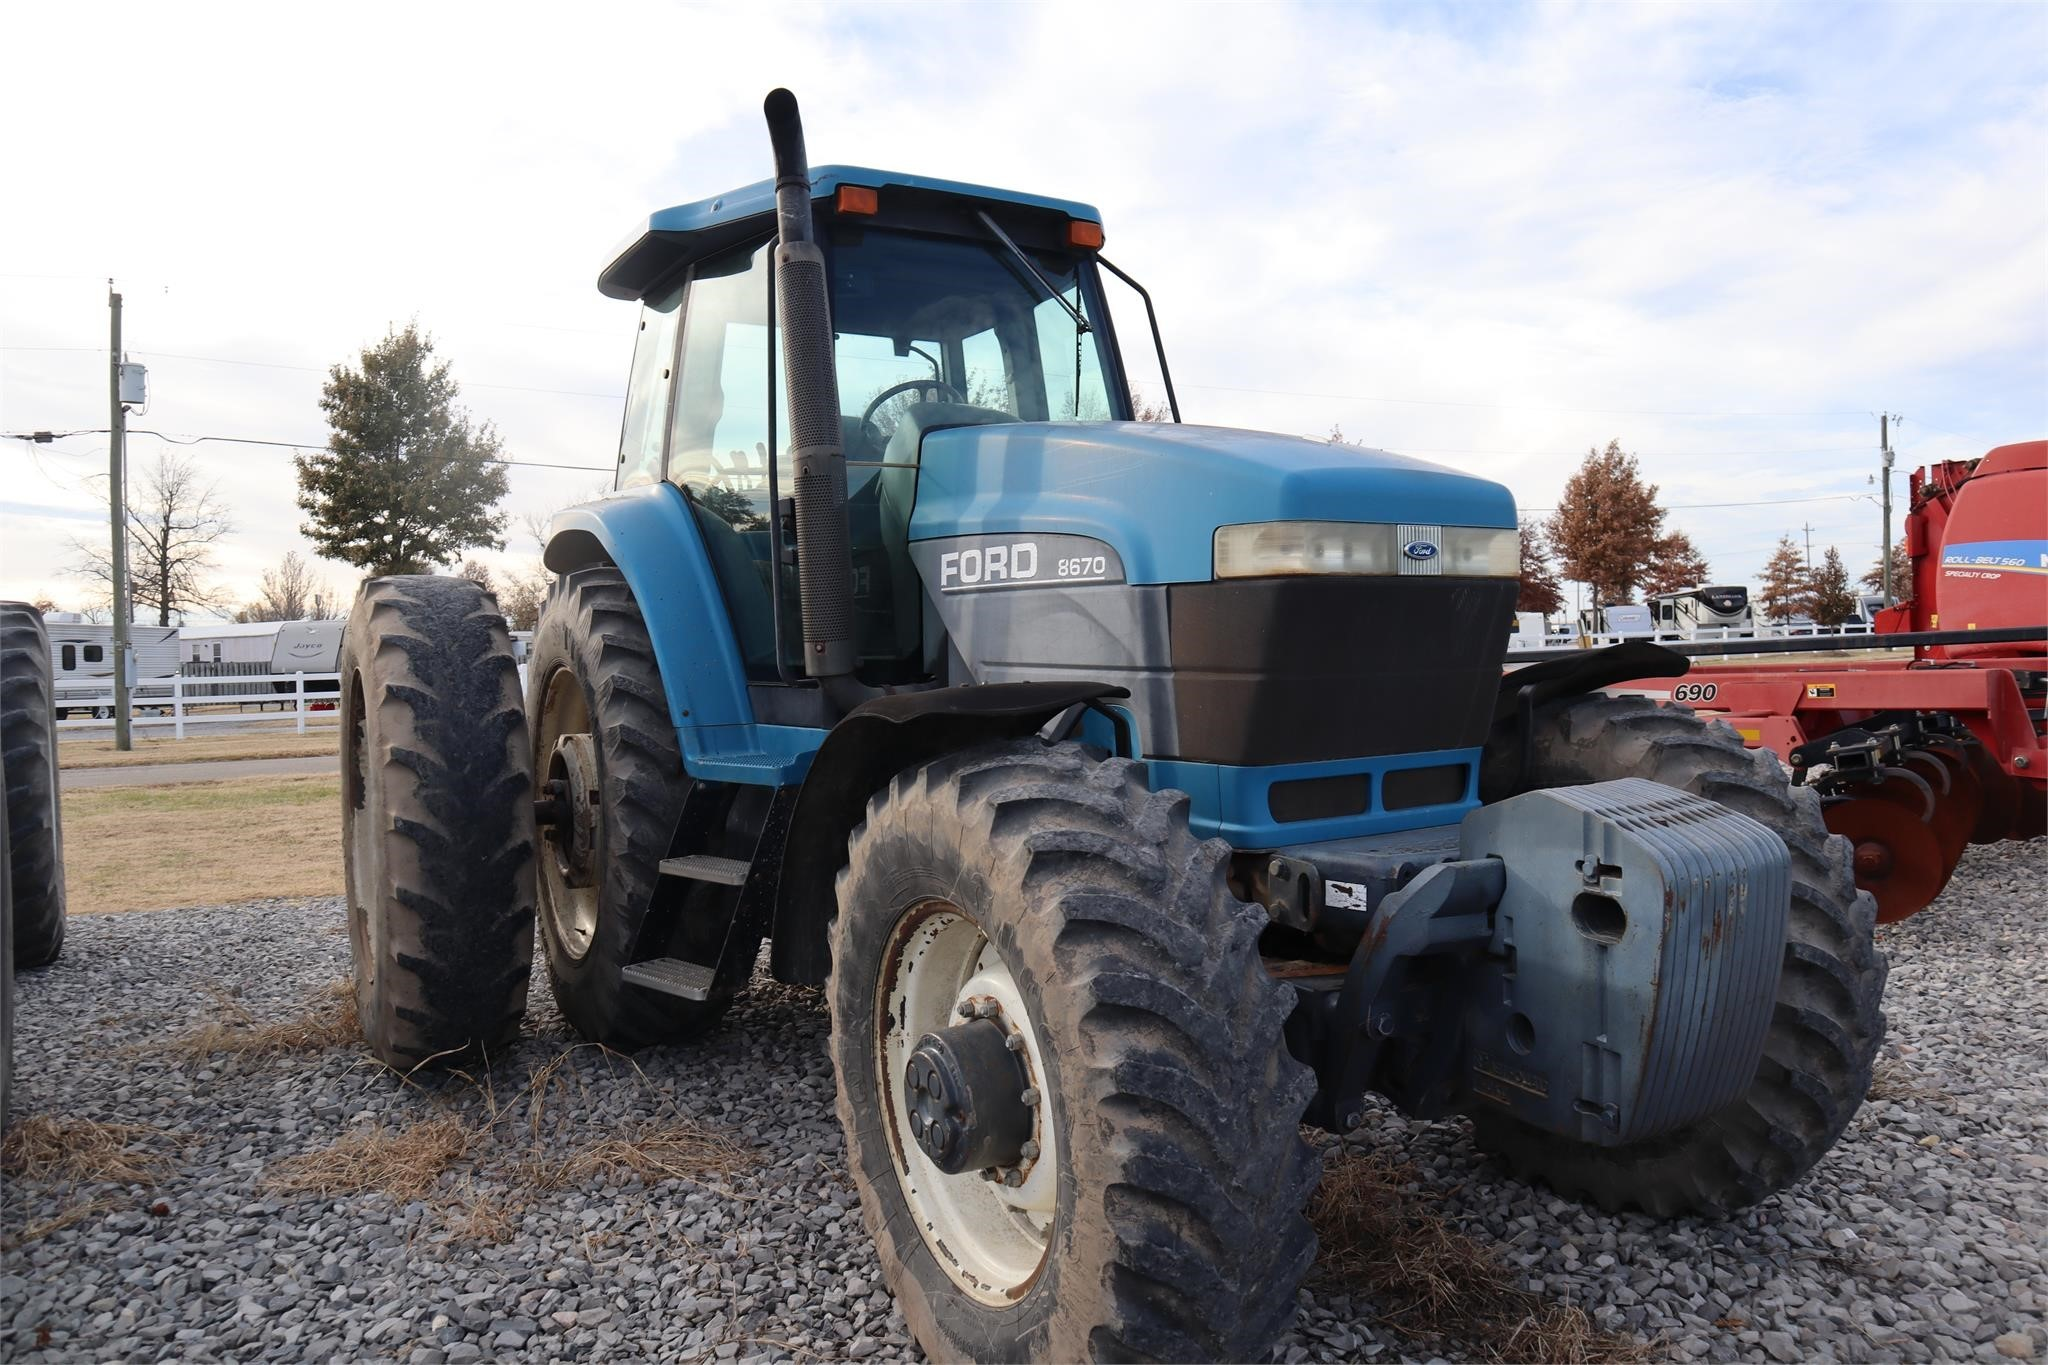 1994 Ford 8670 Tractor